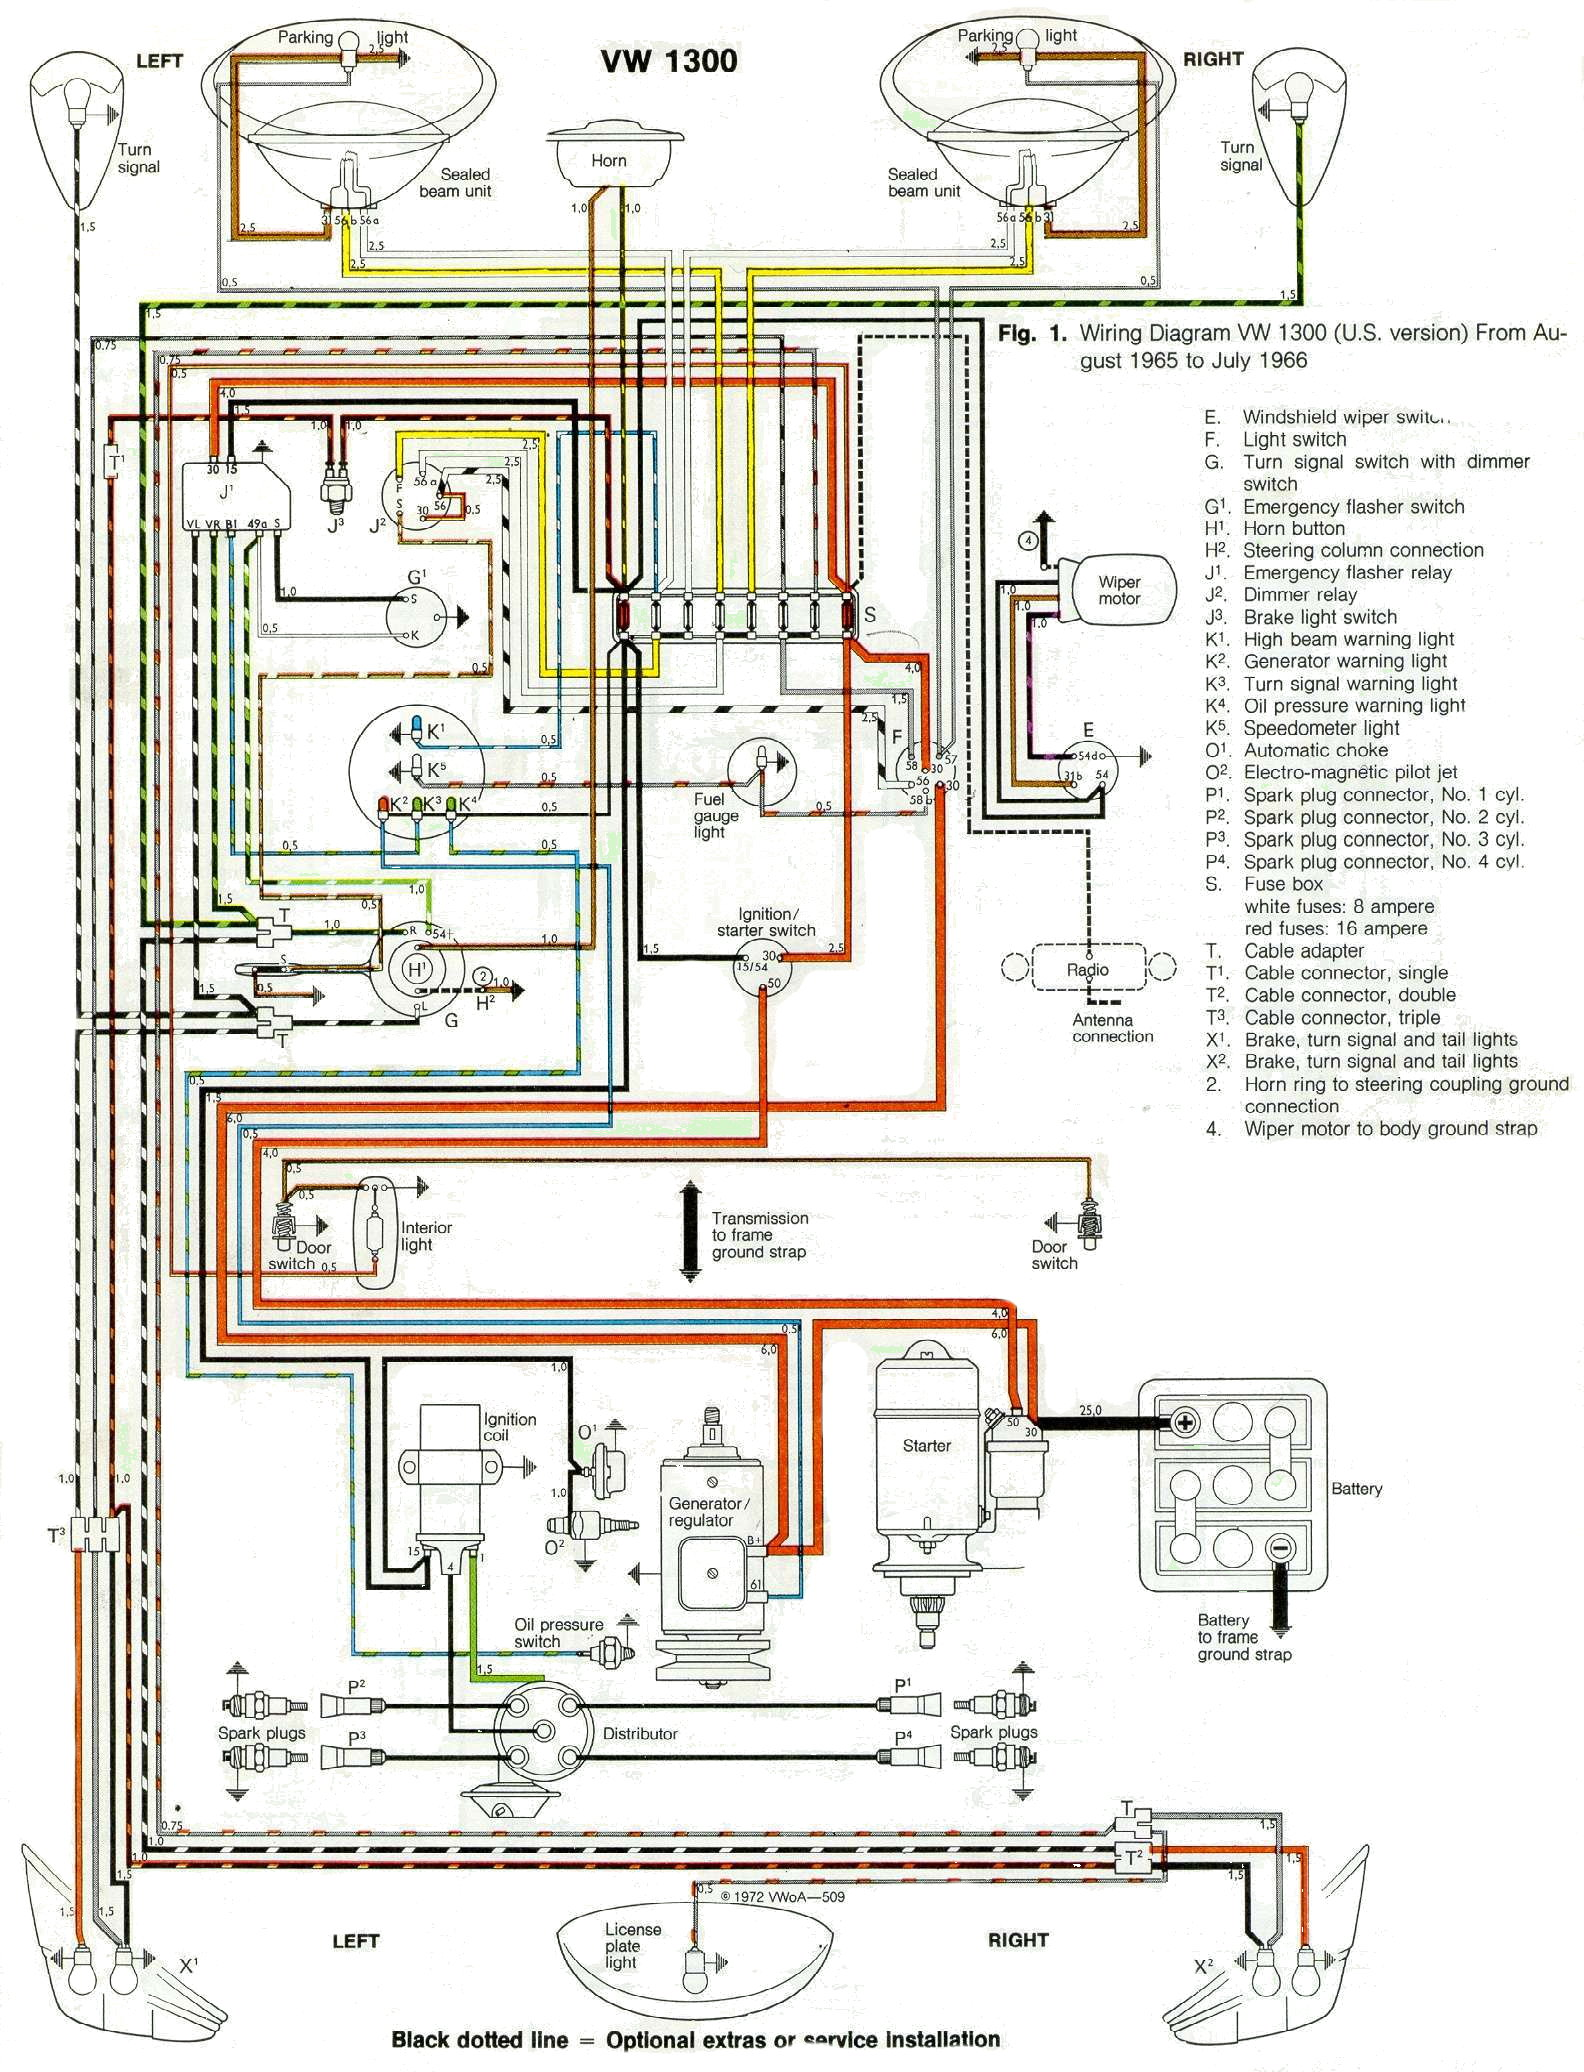 1966 Wiring 1966 wiring diagram vw beetle diagrams at virtualis.co